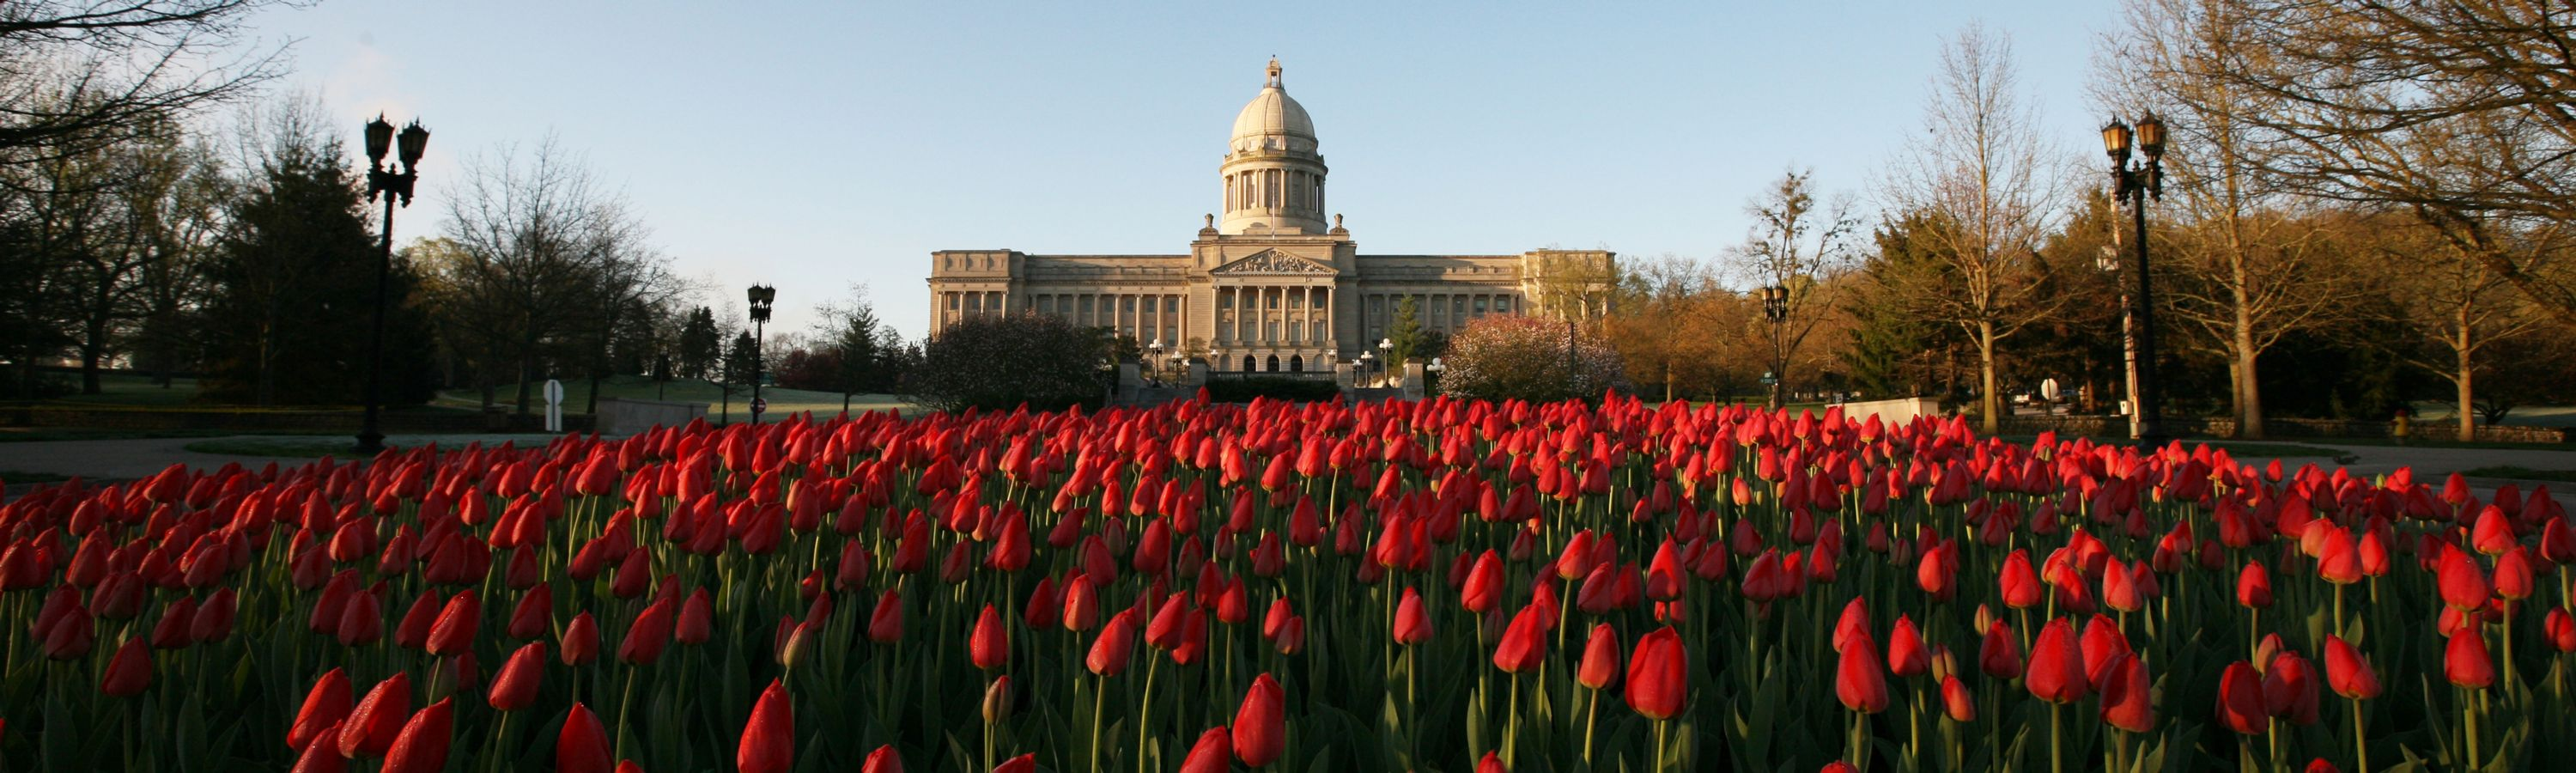 highlights some of Kentucky Farm Bureau's most significant legislative accomplishments in Frankfort and Washington, D.C.